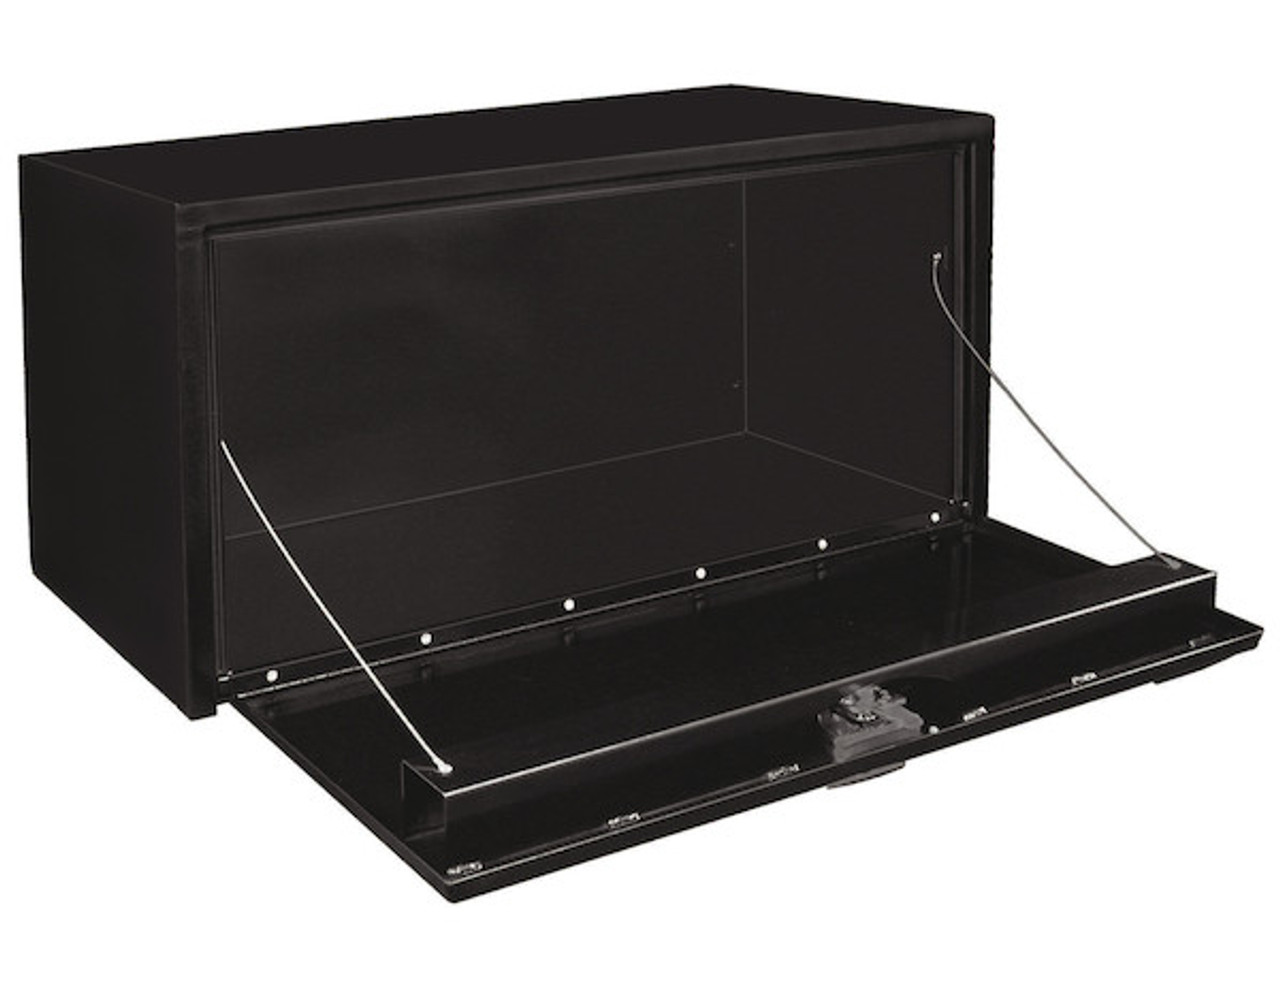 1703310 BUYERS PRODUCTS BLACK STEEL UNDERBODY TRUCK BOX WITH T-LATCH TOOLBOX